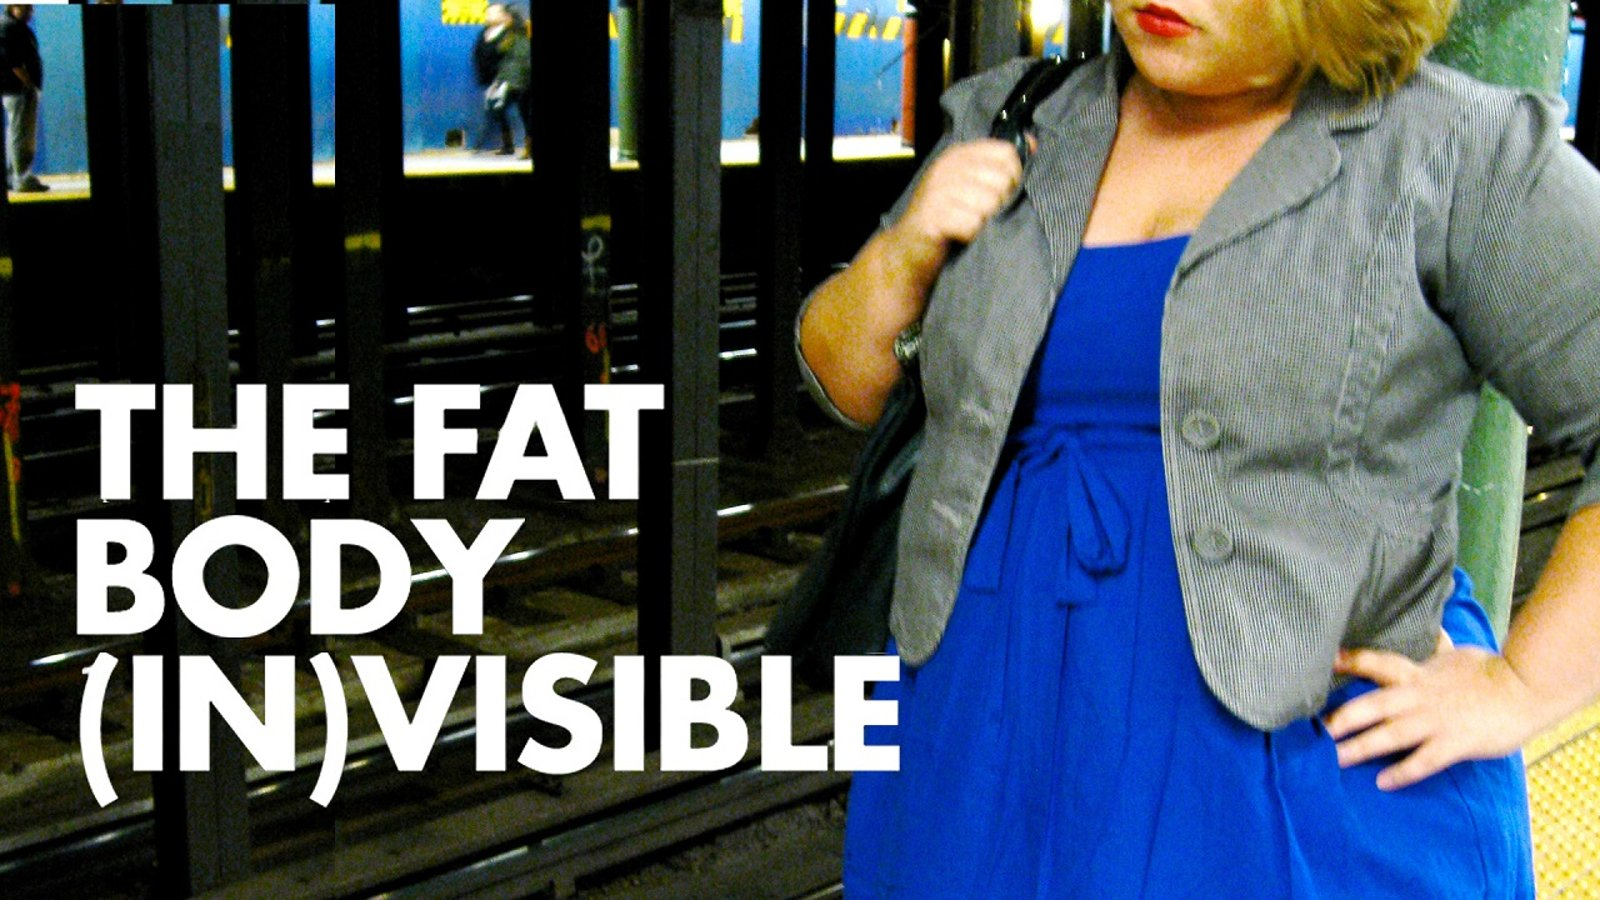 The Fat Body (In) Visible - Race, Gender & Weight: An Activist Perspective